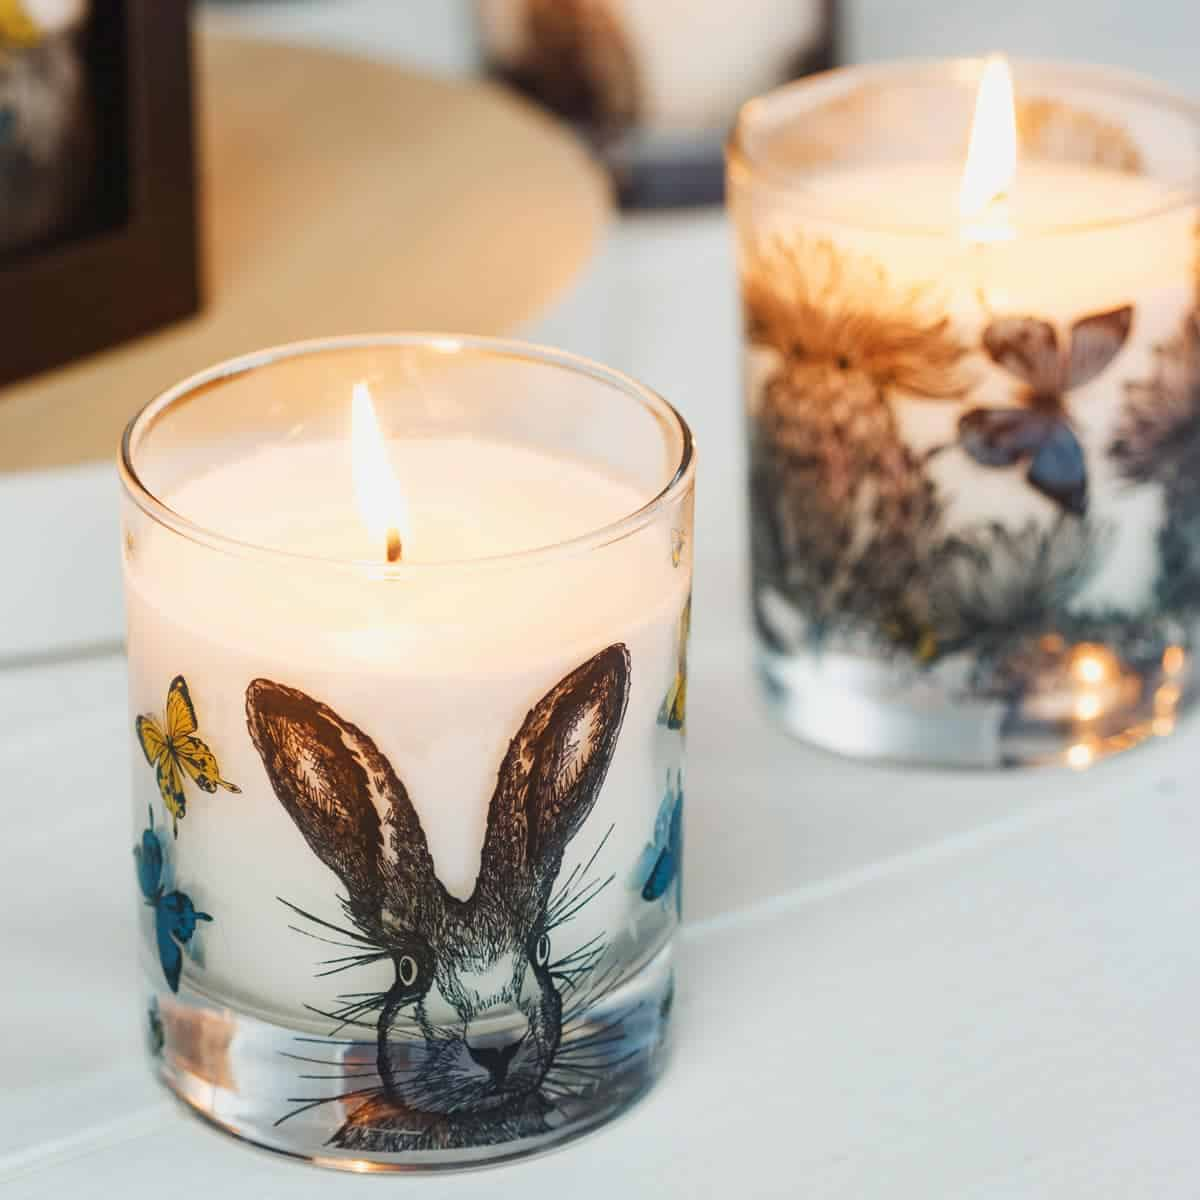 Scented candle with hare design by Gillian Kyle